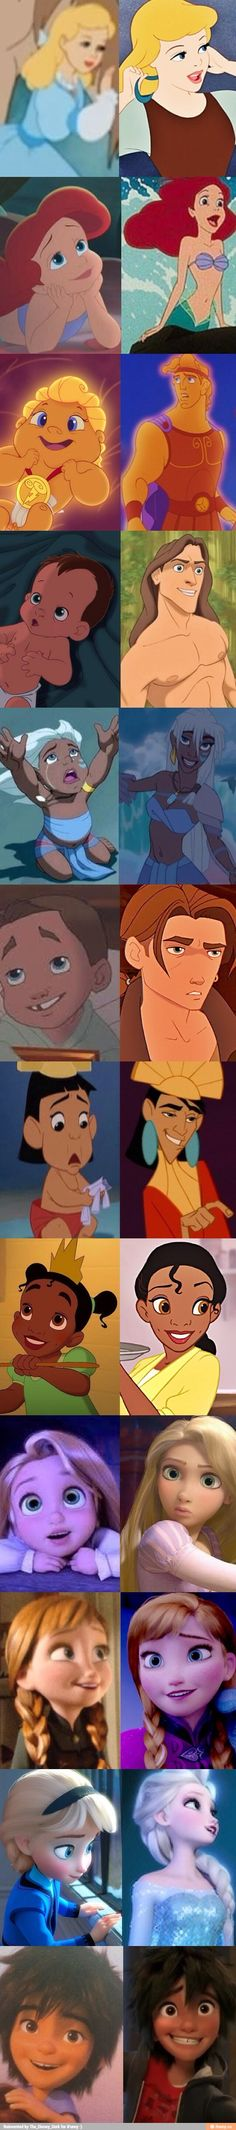 Young Disney Characters